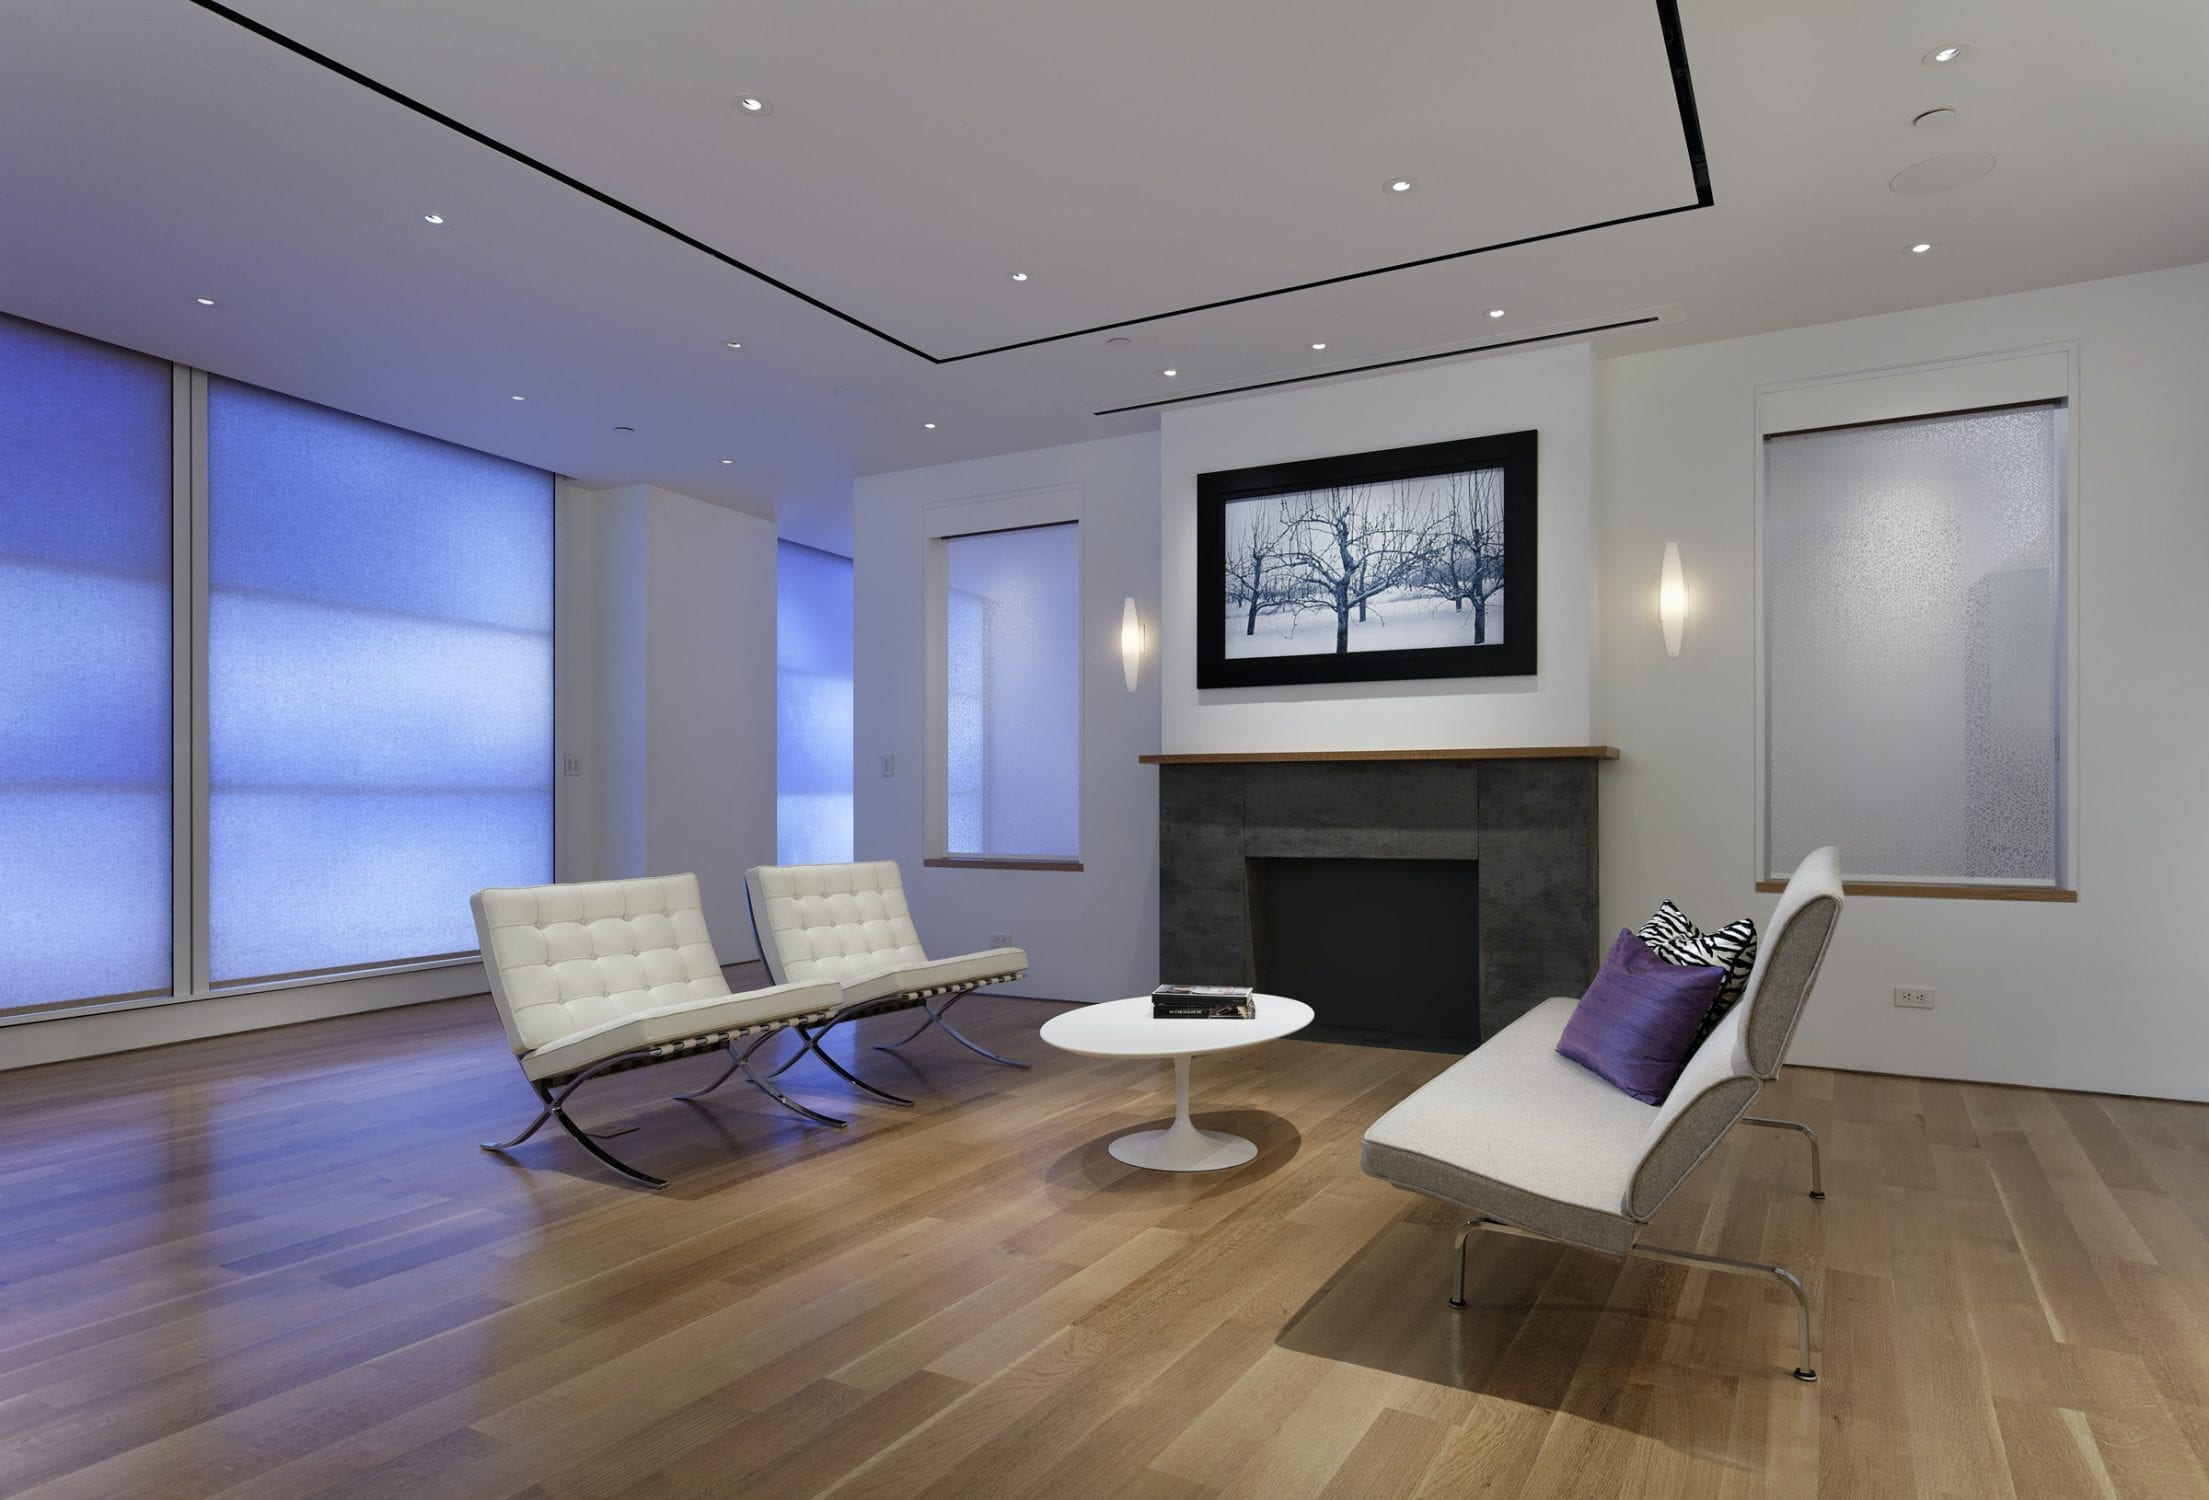 Customizing Your Home with a Lutron Lighting System